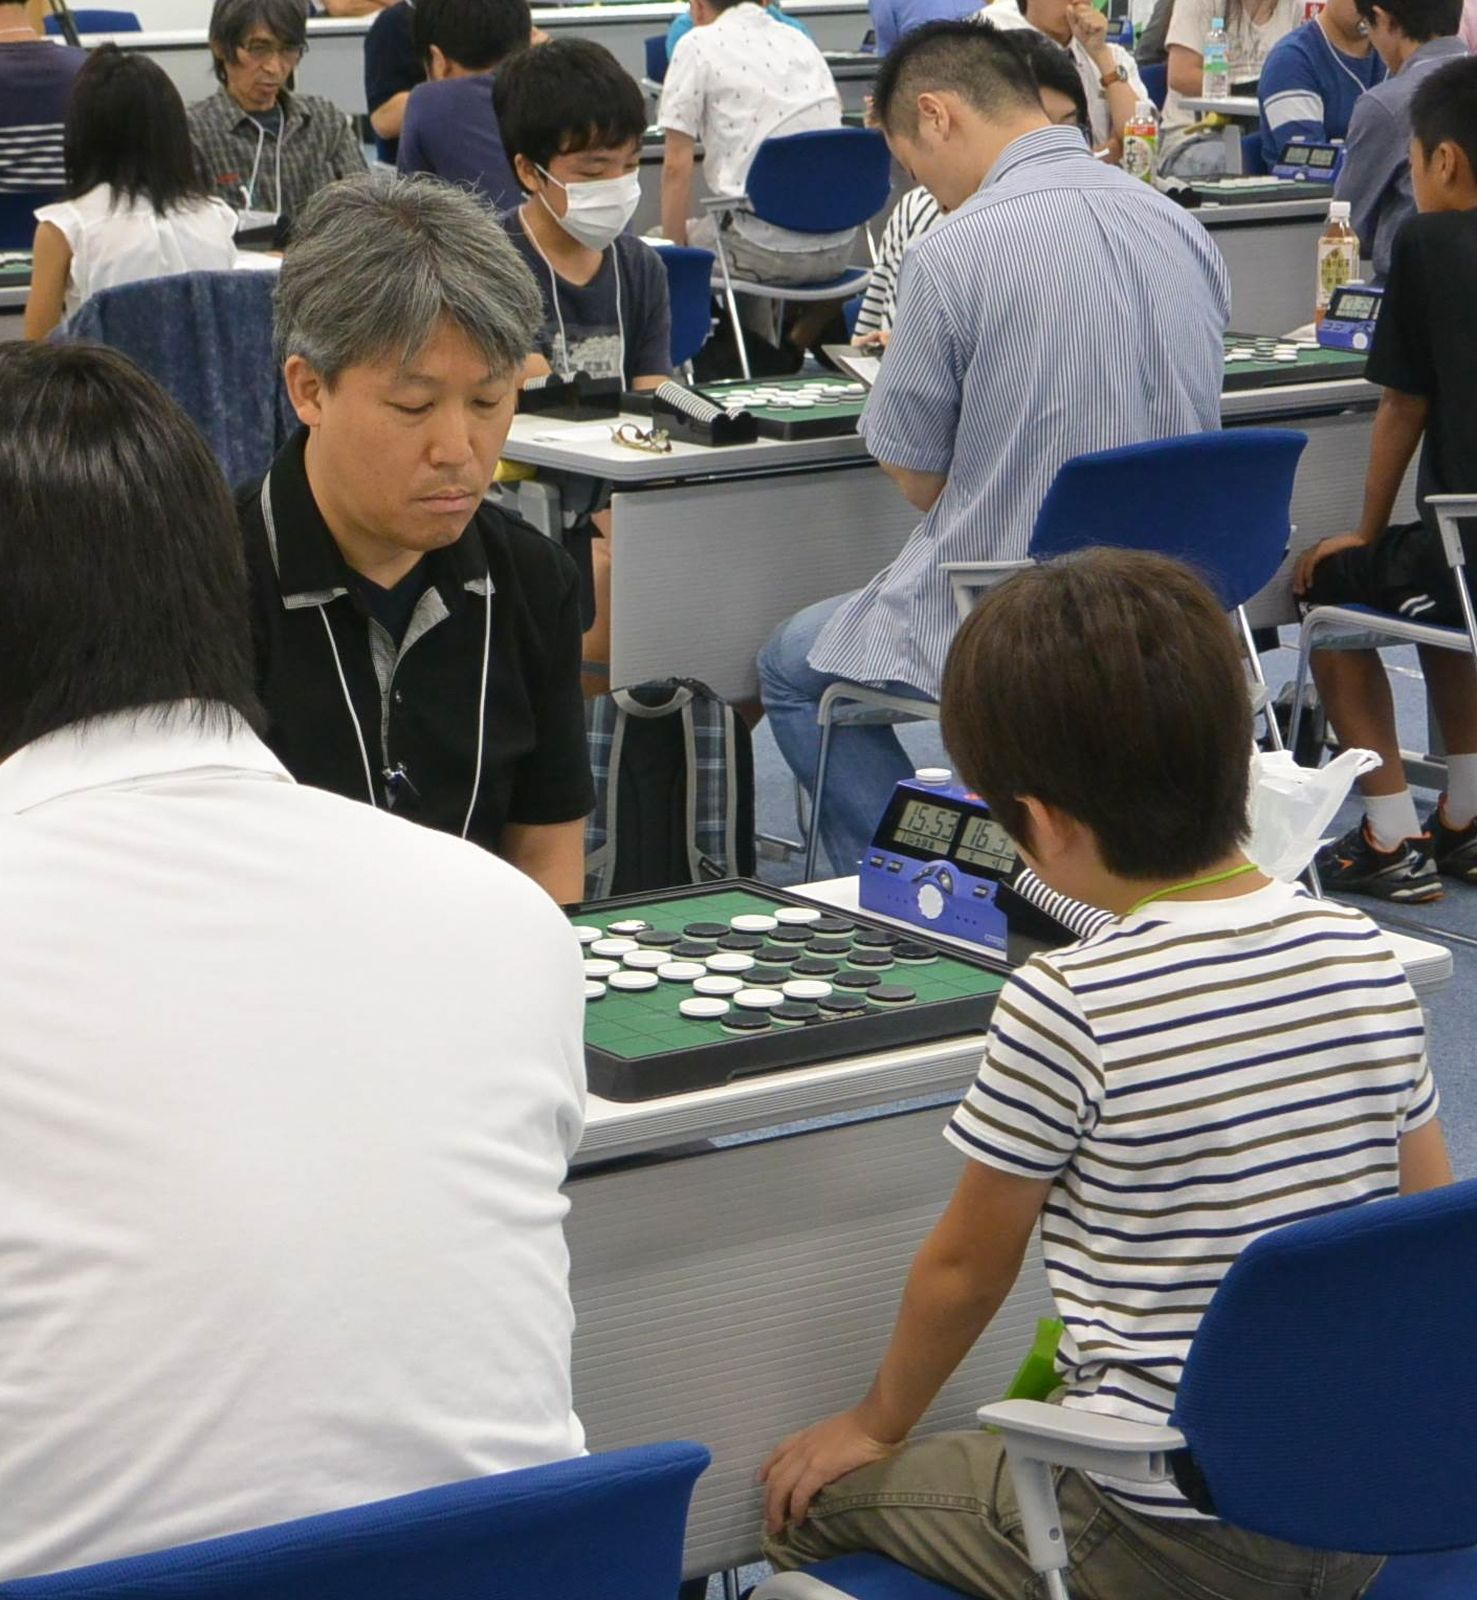 Meet the 11-Year-Old Keisuke Fukuchi, Youngest Othello Champion Ever